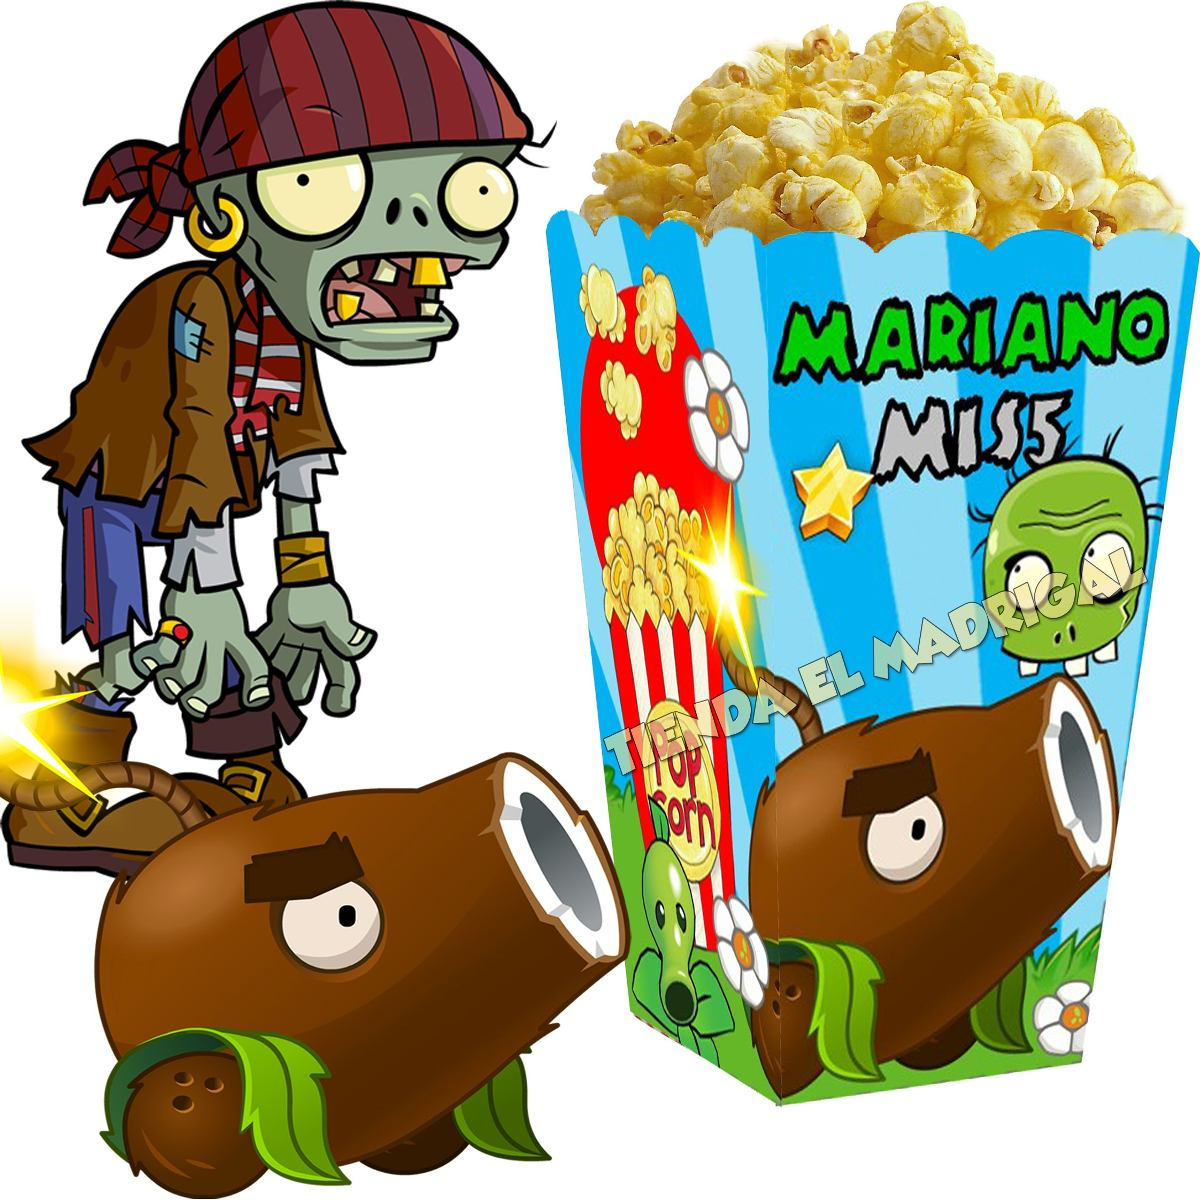 Kit imprimible zombies vs plants candy bar golosinas 2x1 5490 kit imprimible zombies vs plants candy bar golosinas 2x1 cargando zoom voltagebd Image collections